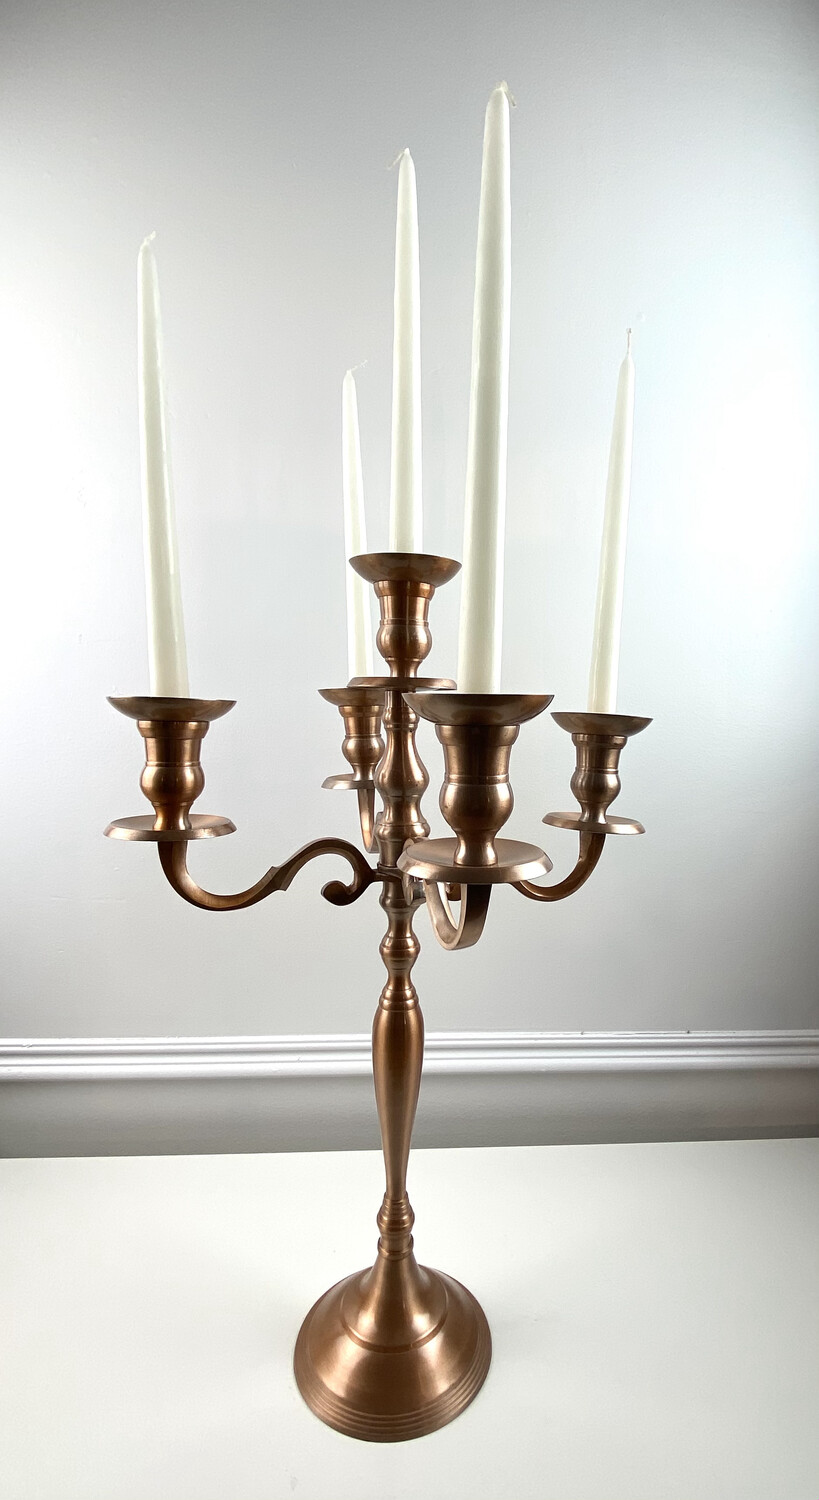 Candelabra with Candles